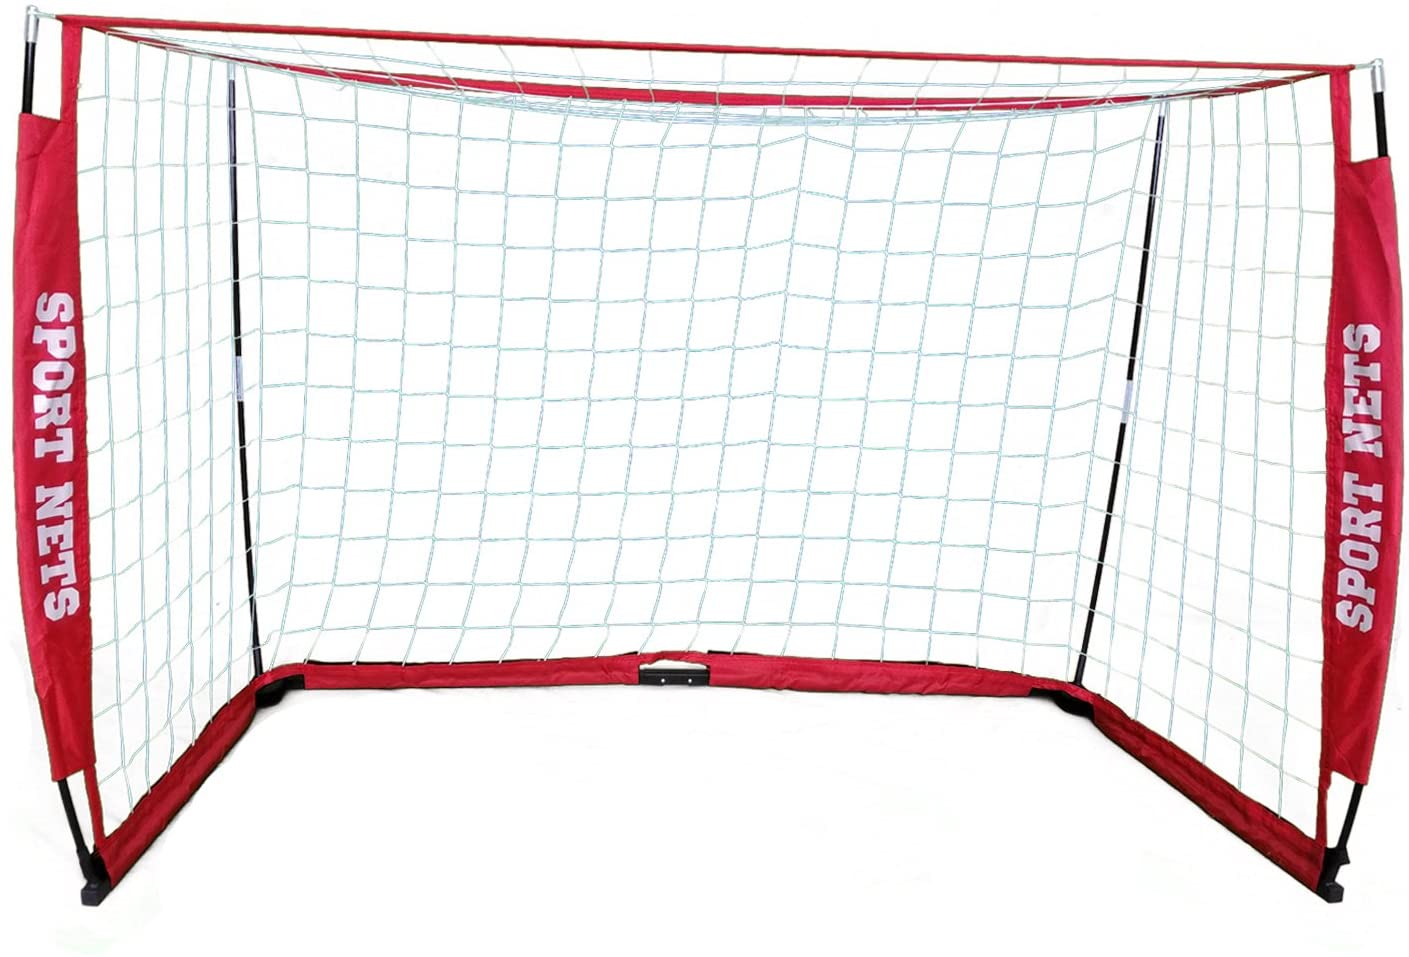 Sport Nets Portable Soccer Goal - Bow Frame Soccer Net with Carry Bag -Available is 4 Sizes 4' X 6' - 4' X 8' - 6' X 12-7 x 14 Feet